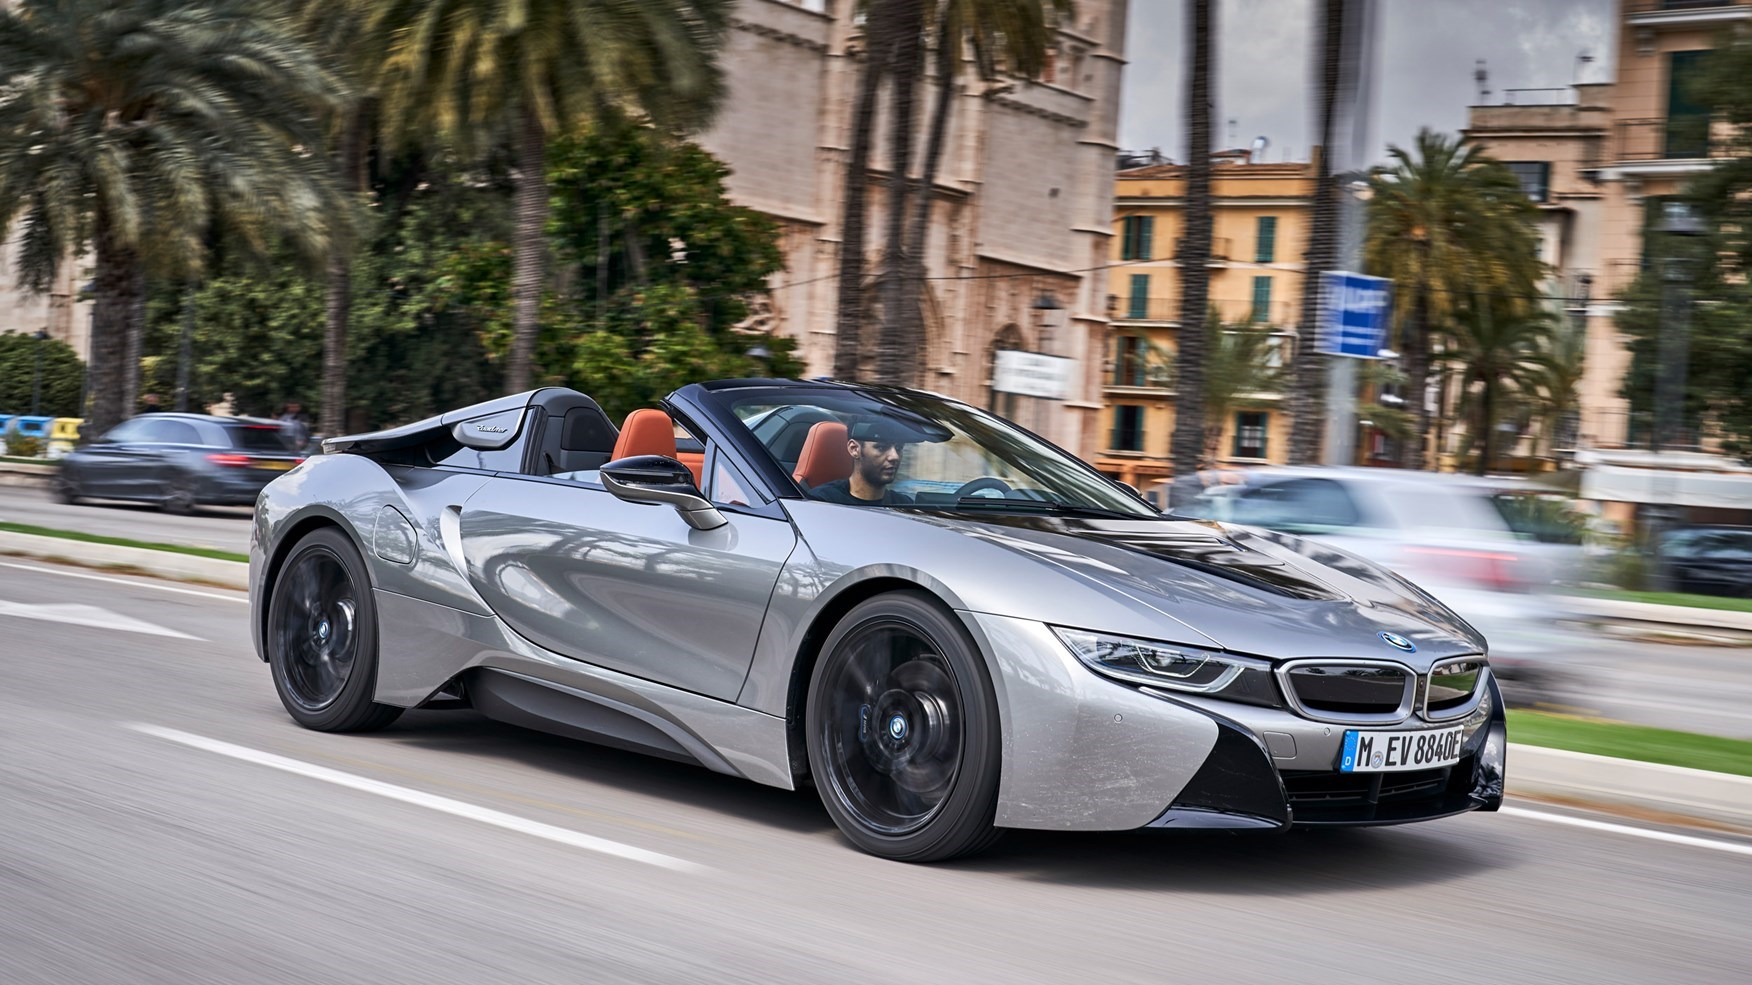 Bmw I8 Hybrid Now Available As Roadster Or Coupe